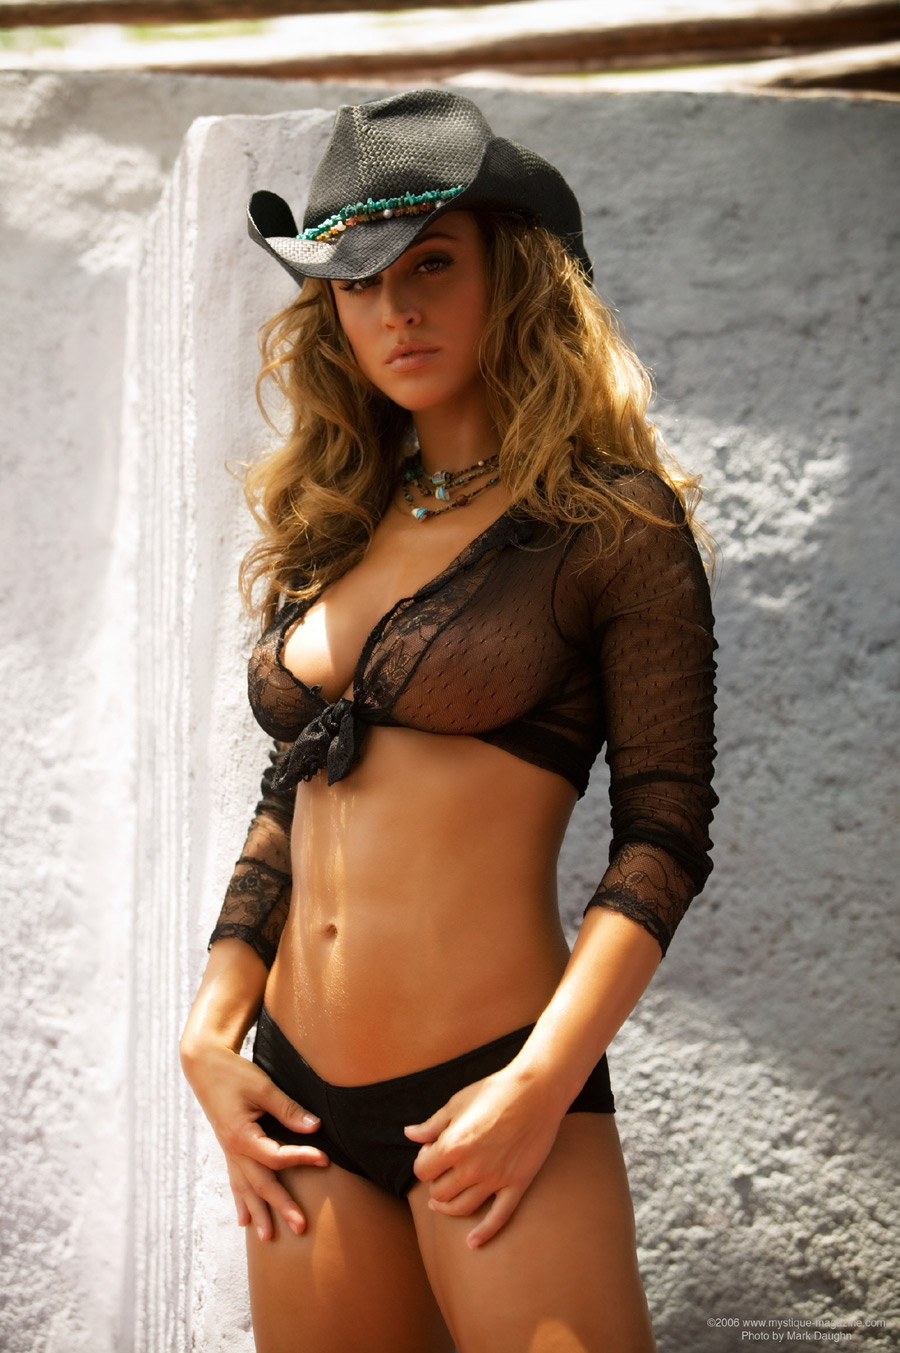 Agree, Cowgirls lingerie half nude were not